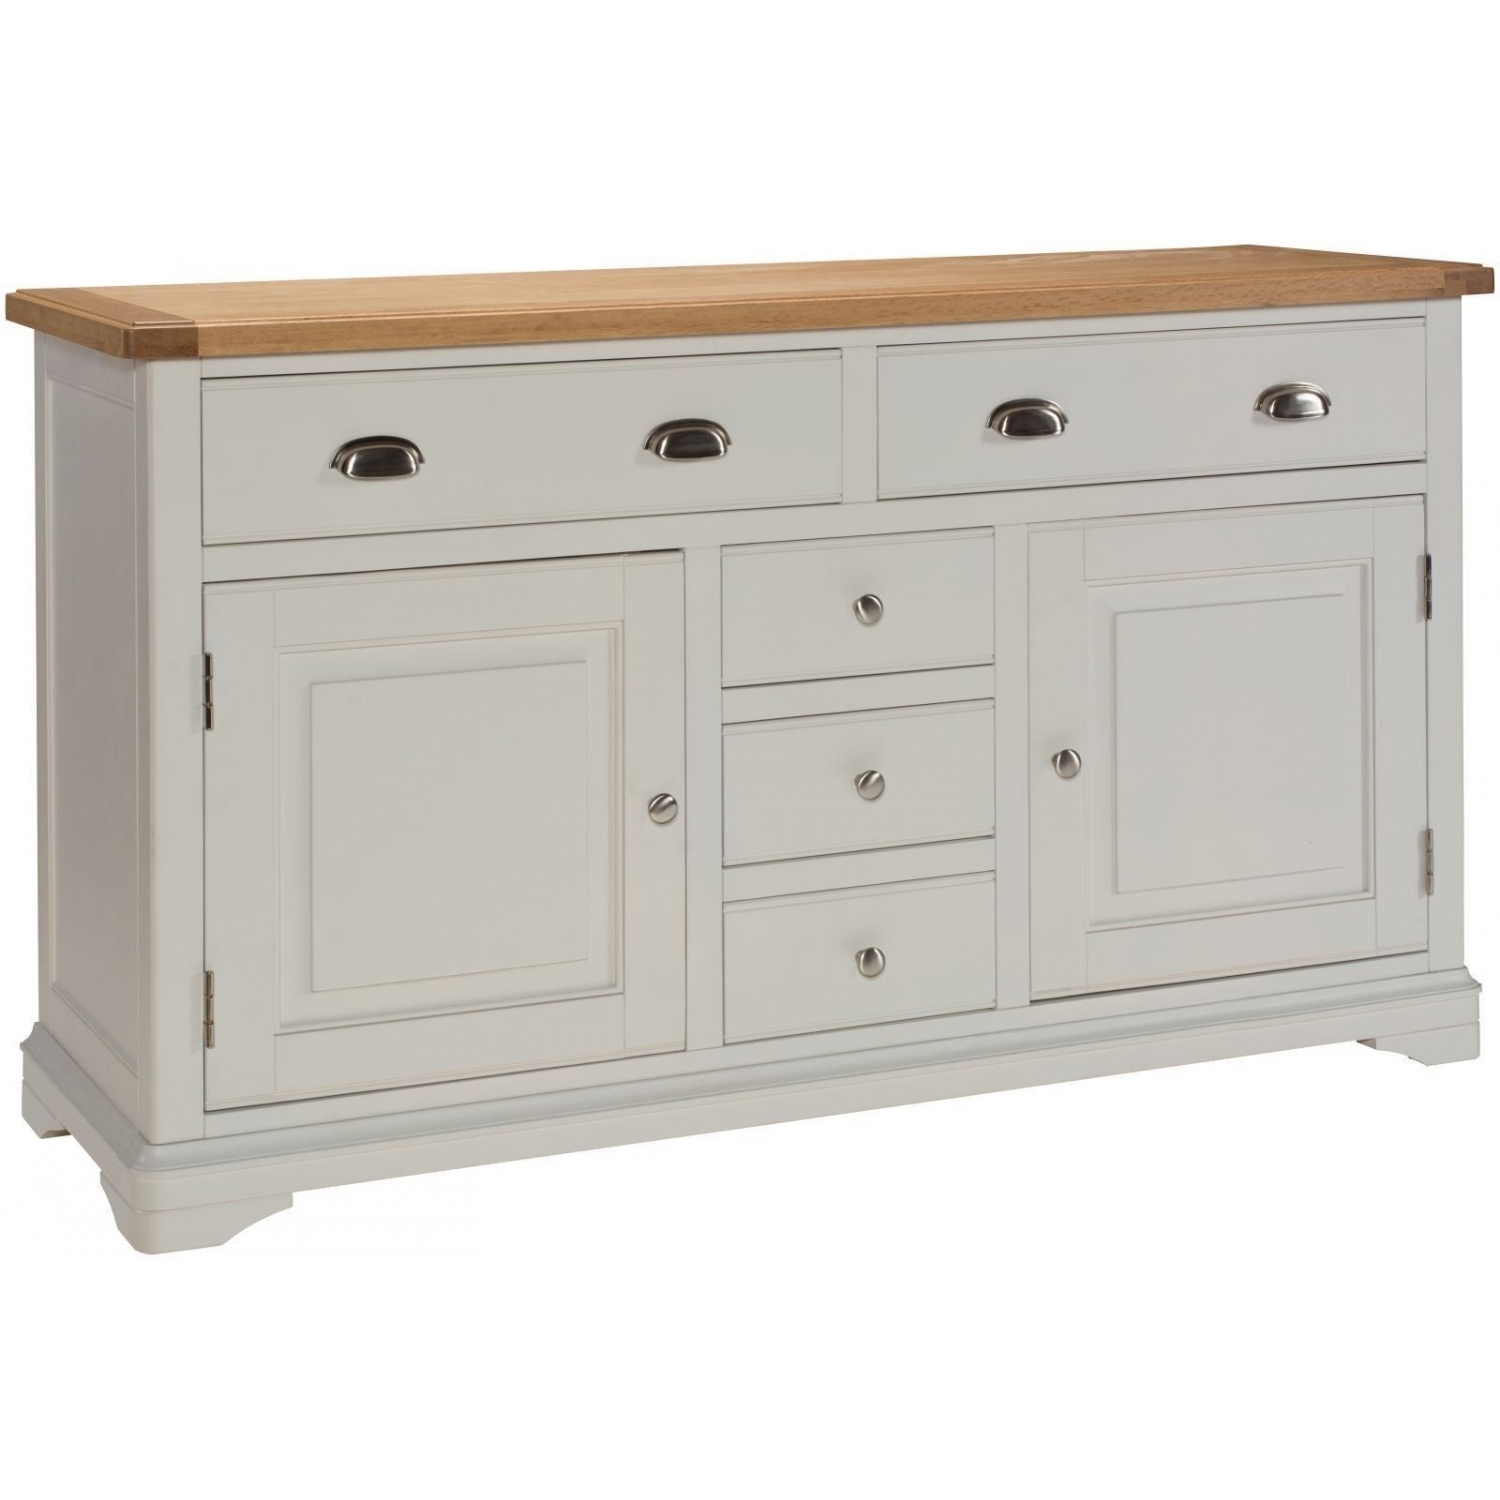 dillon oak grey painted furniture large living dining room sideboard